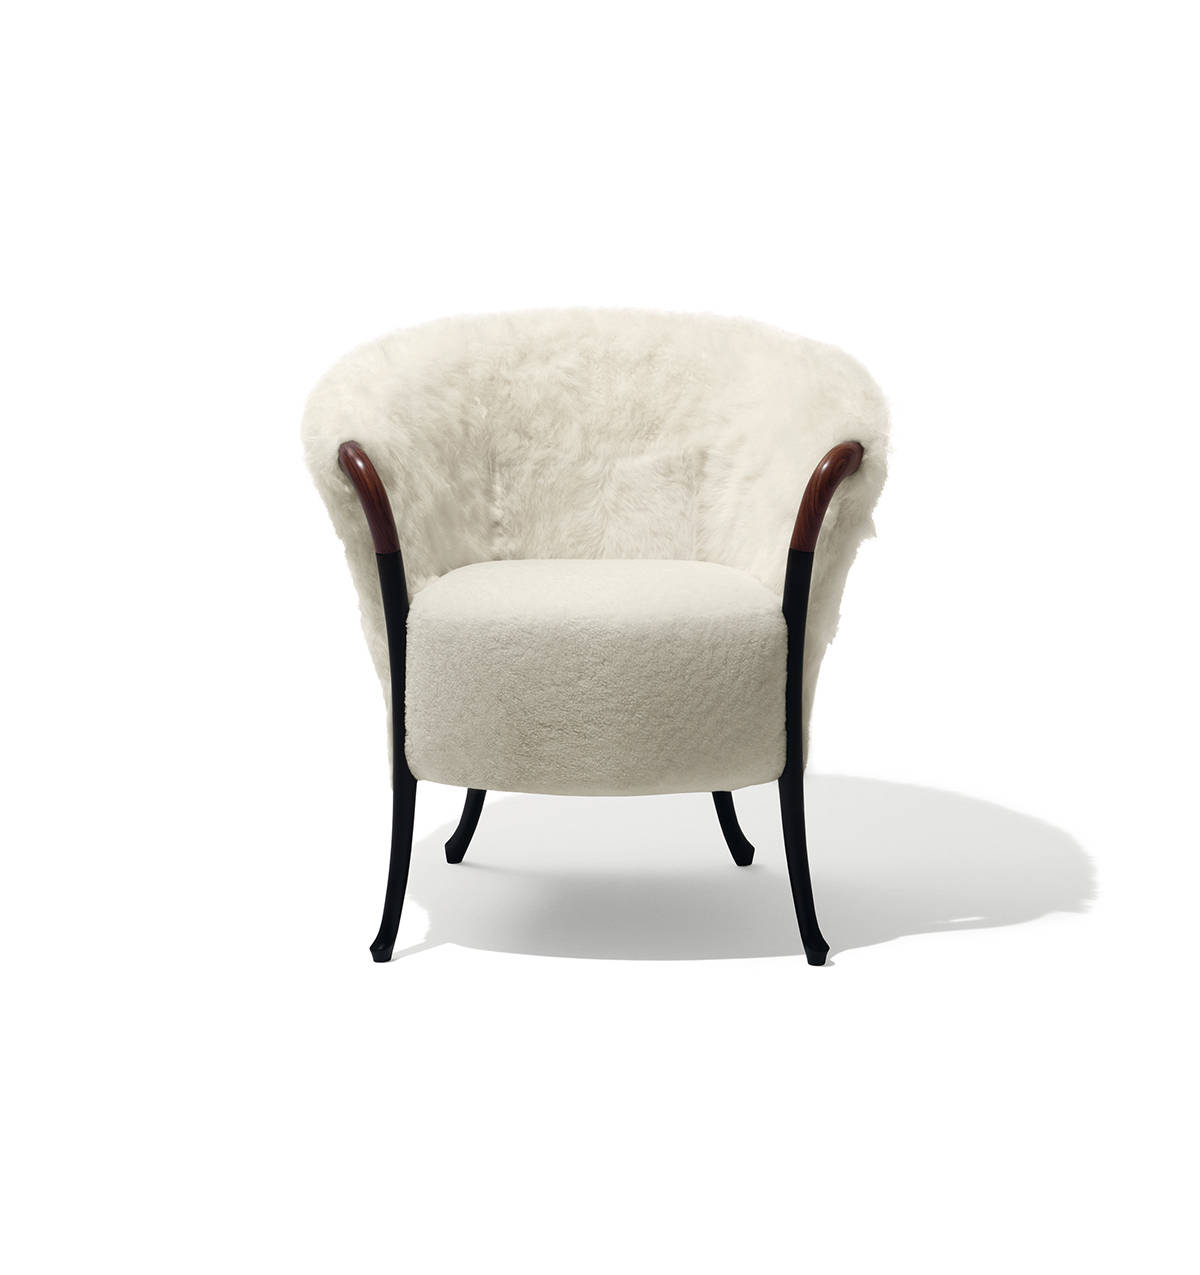 sale retailer 59487 0a939 Original style experiences by Giorgetti and Agnona - Luxury ...